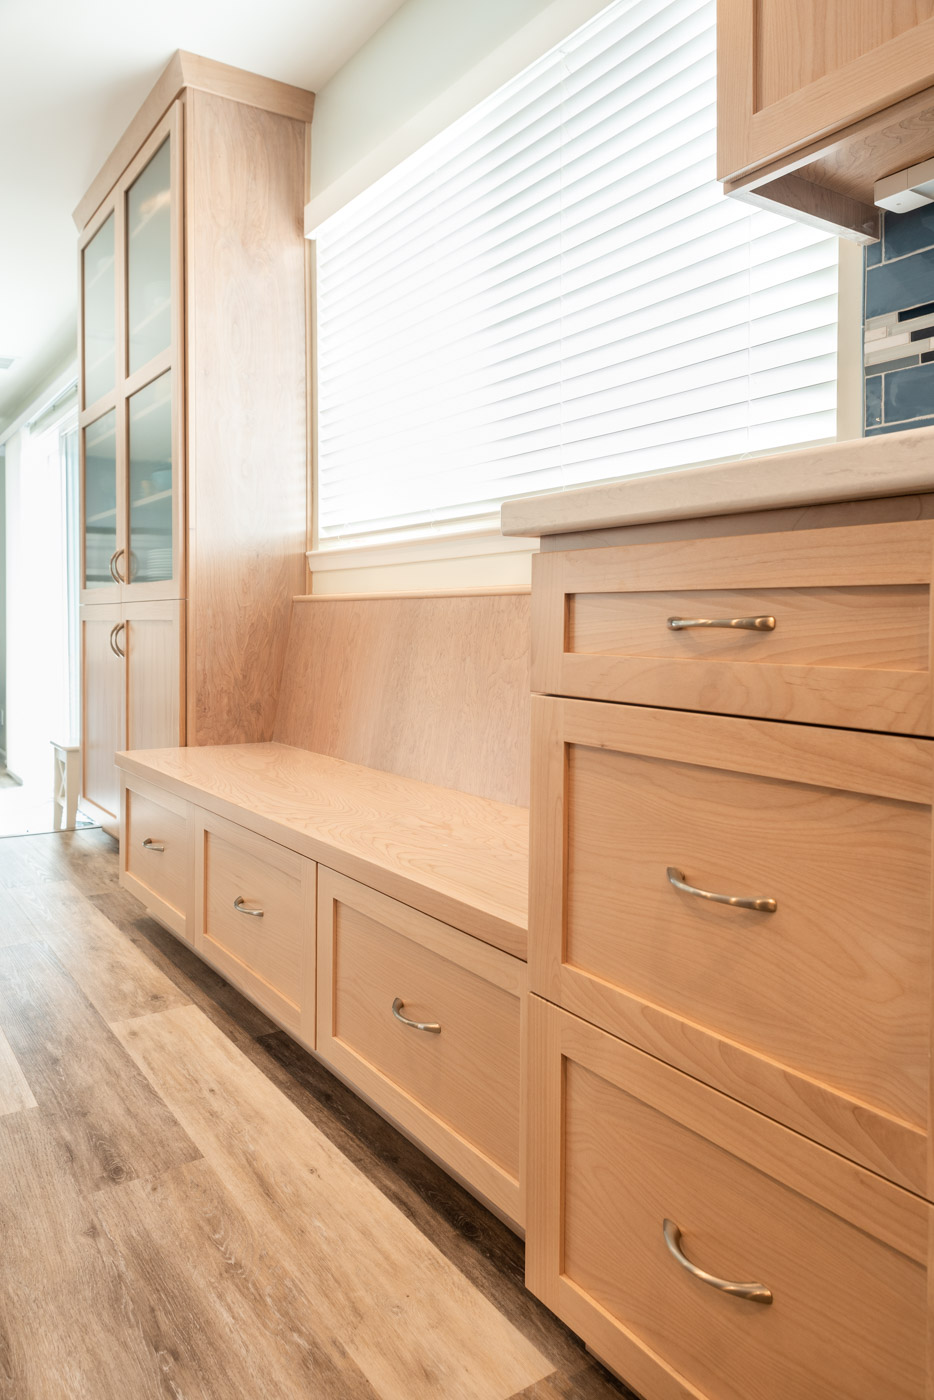 Coastal Contemporary custom kitchen cabinets with natural wood stain and custom built in bench